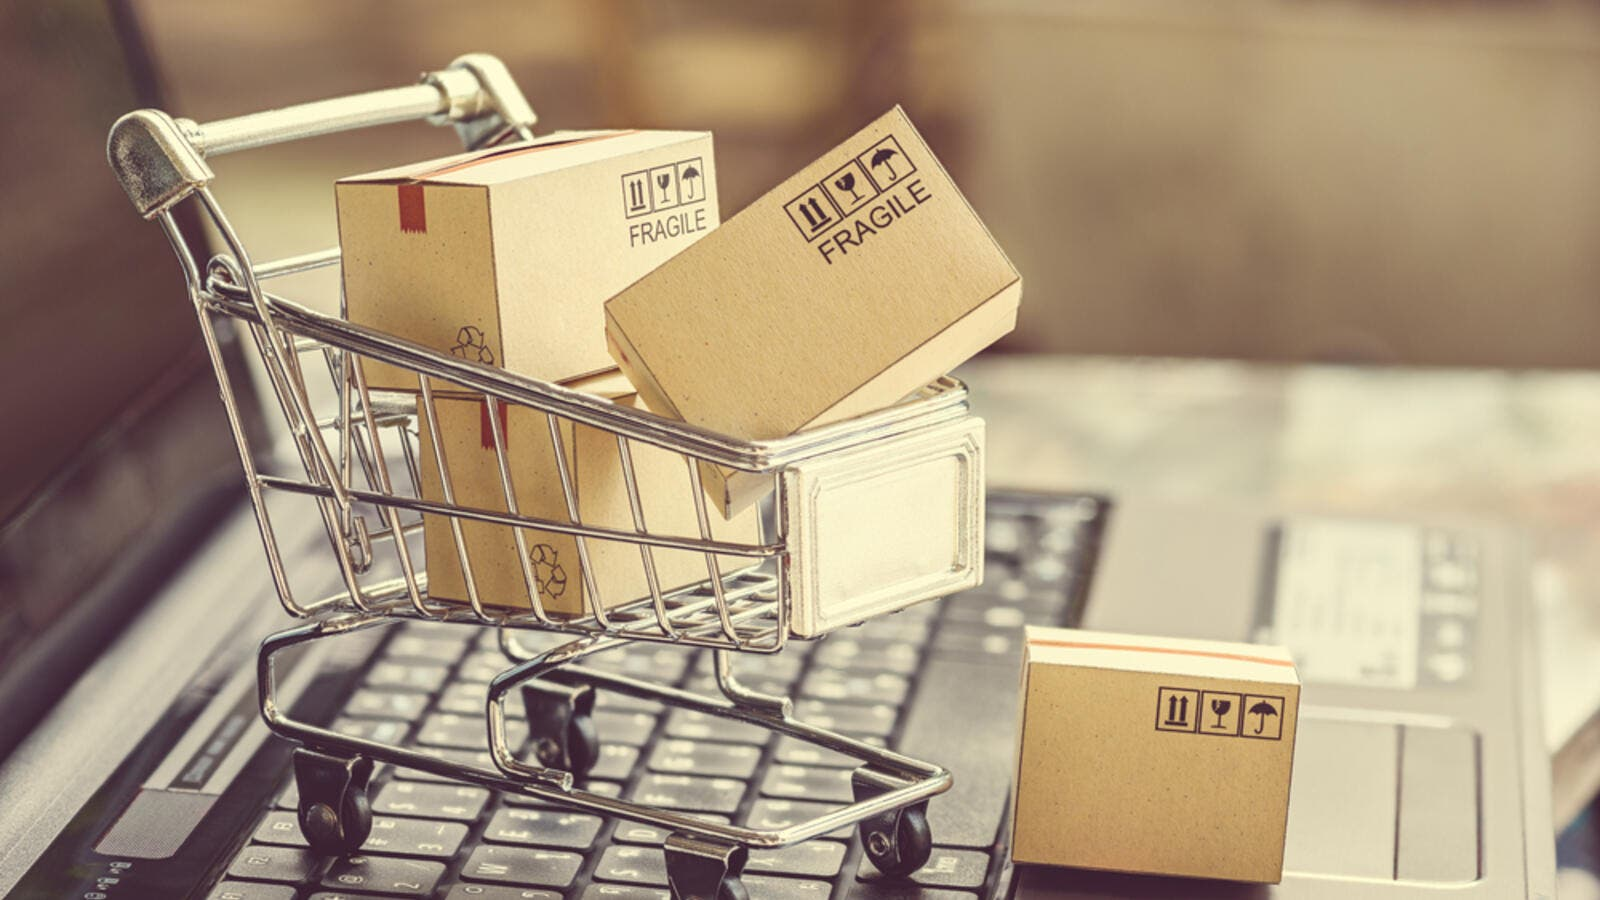 Saudi Arabia Among Top 10 Developing and Transition Economies in UN E-Commerce Index